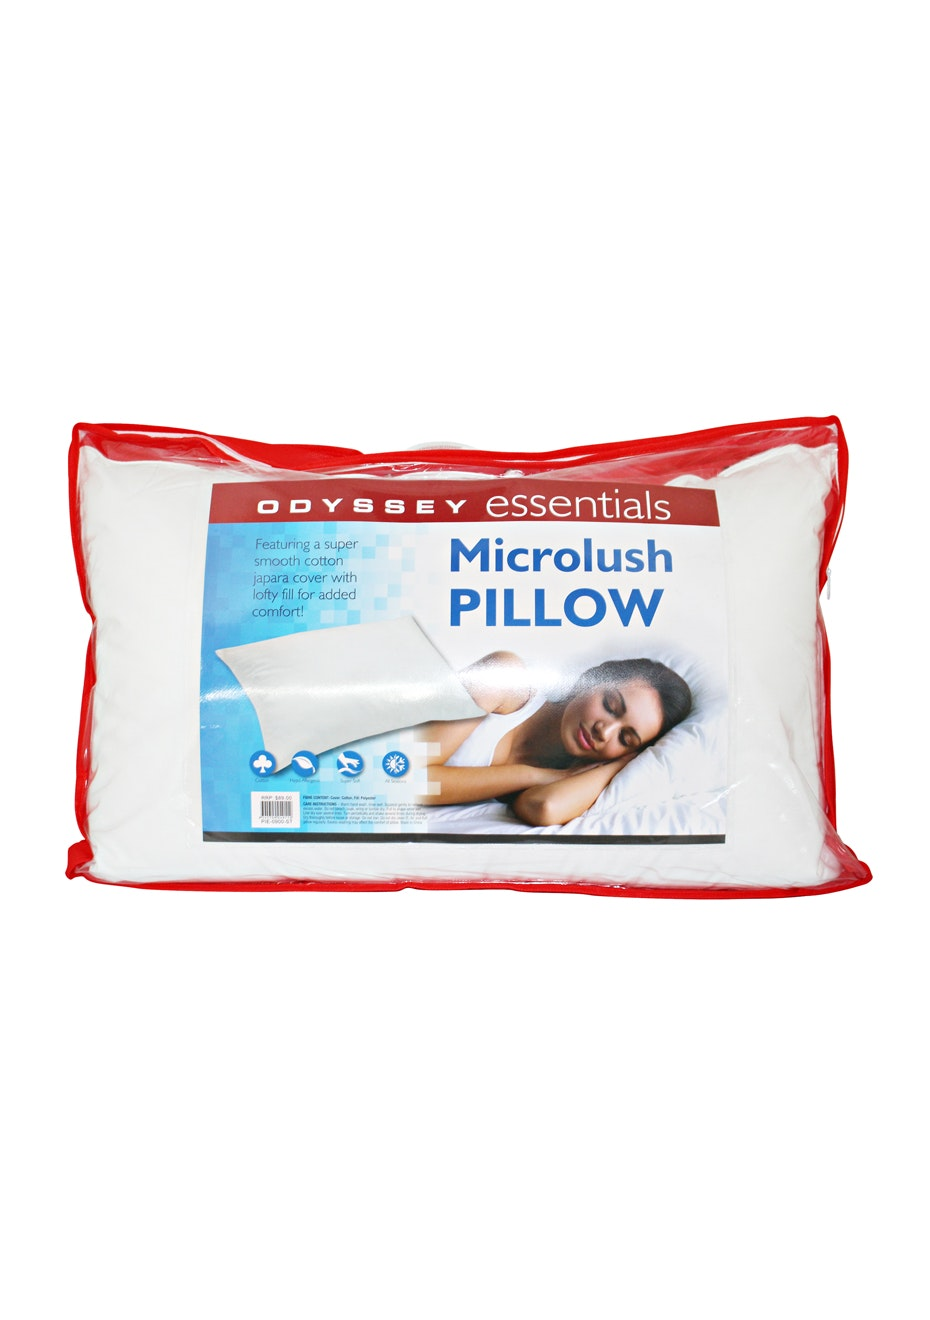 Microfibre Pillow with 100% Cotton Cover - 900 GMS